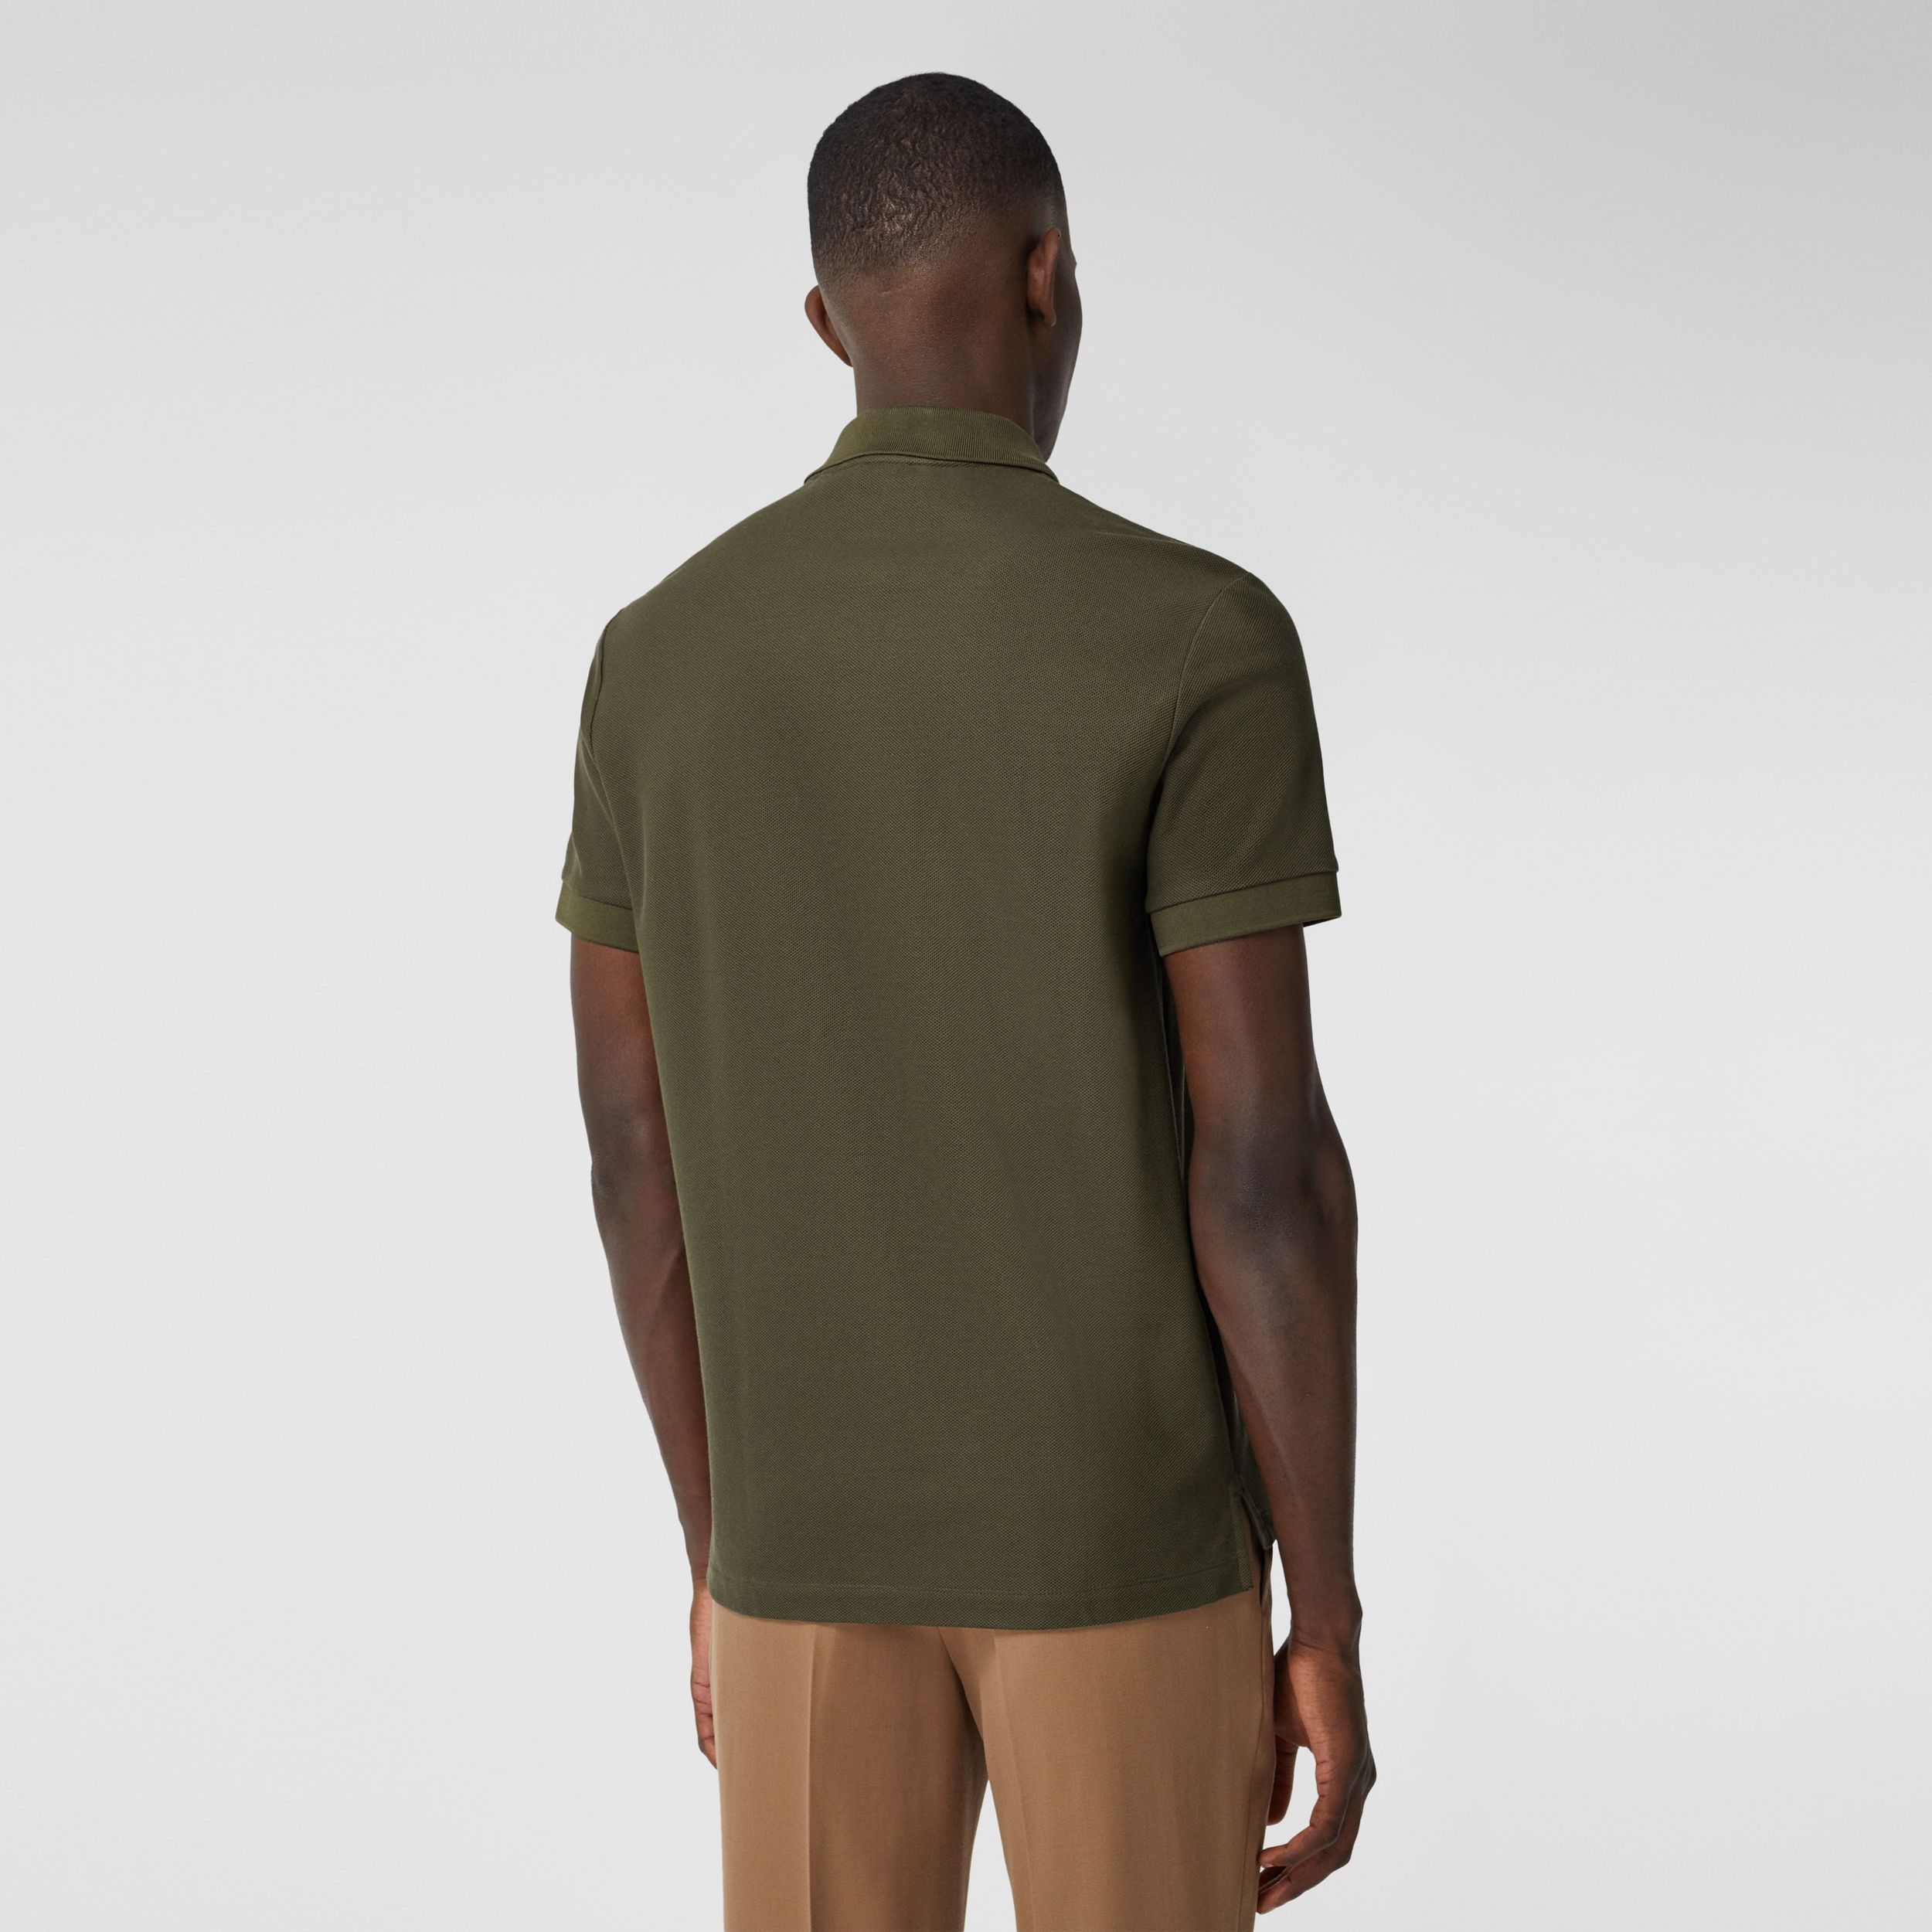 Monogram Motif Cotton Piqué Polo Shirt in Dark Olive - Men | Burberry Hong Kong S.A.R. - 3